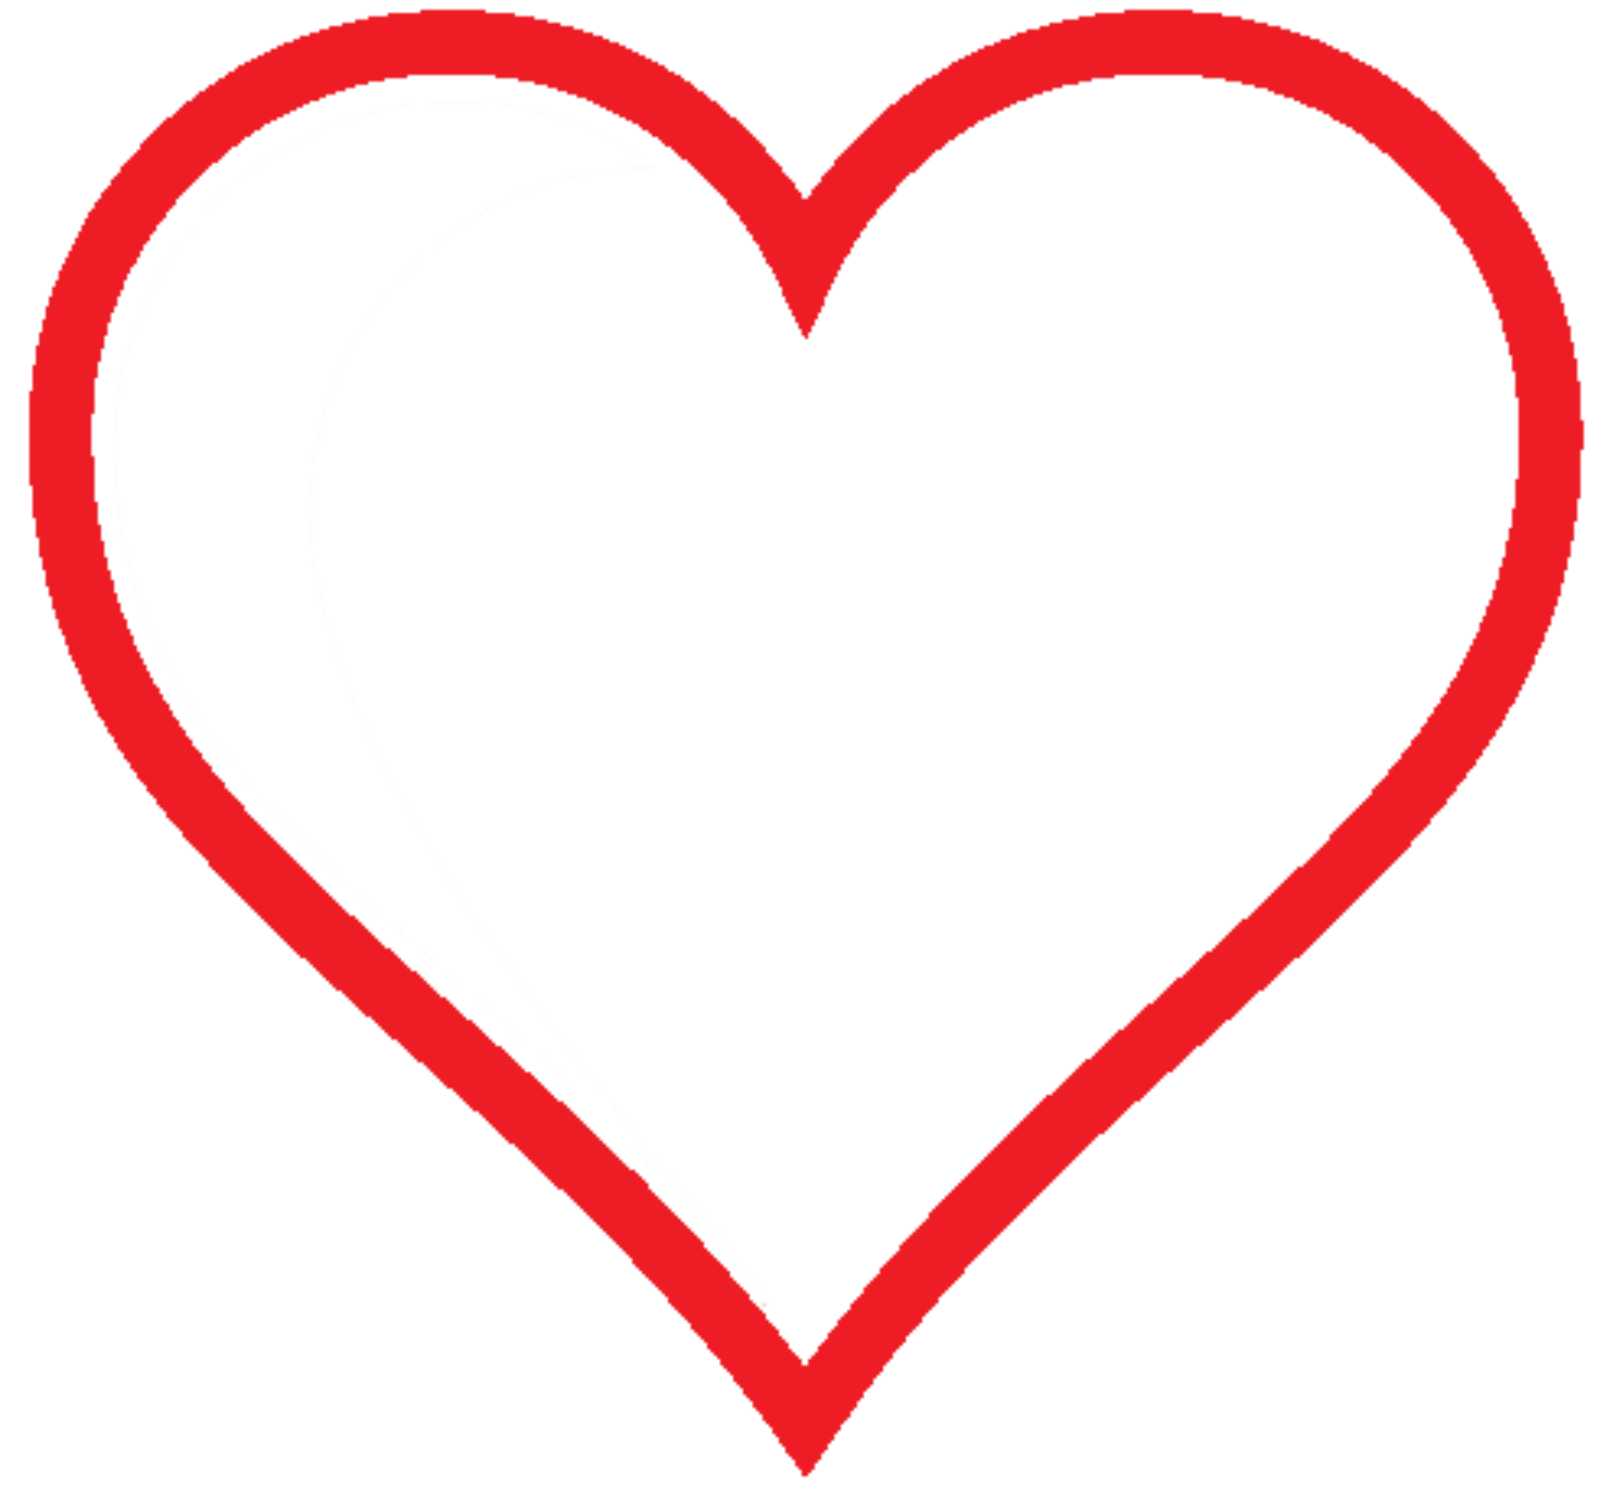 Heart love png. Free icons and backgrounds